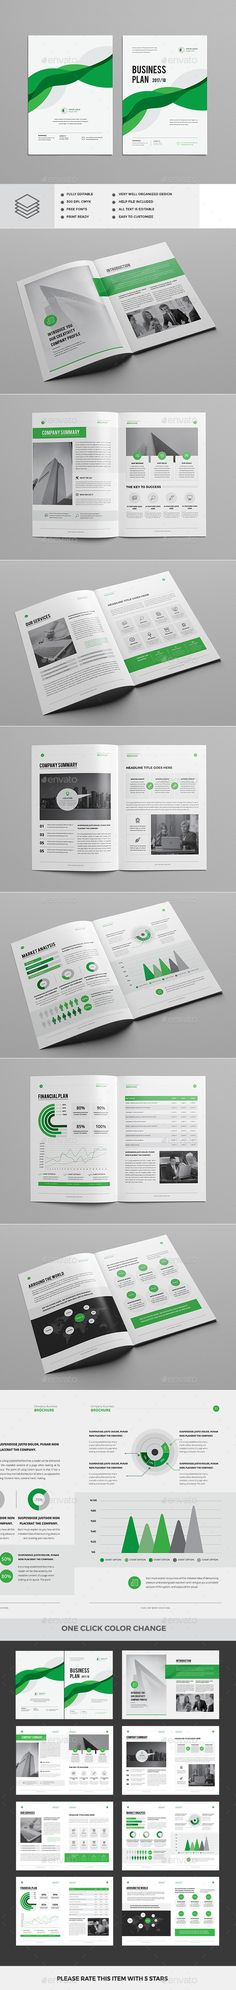 Business Plan Brochure Template InDesign INDD